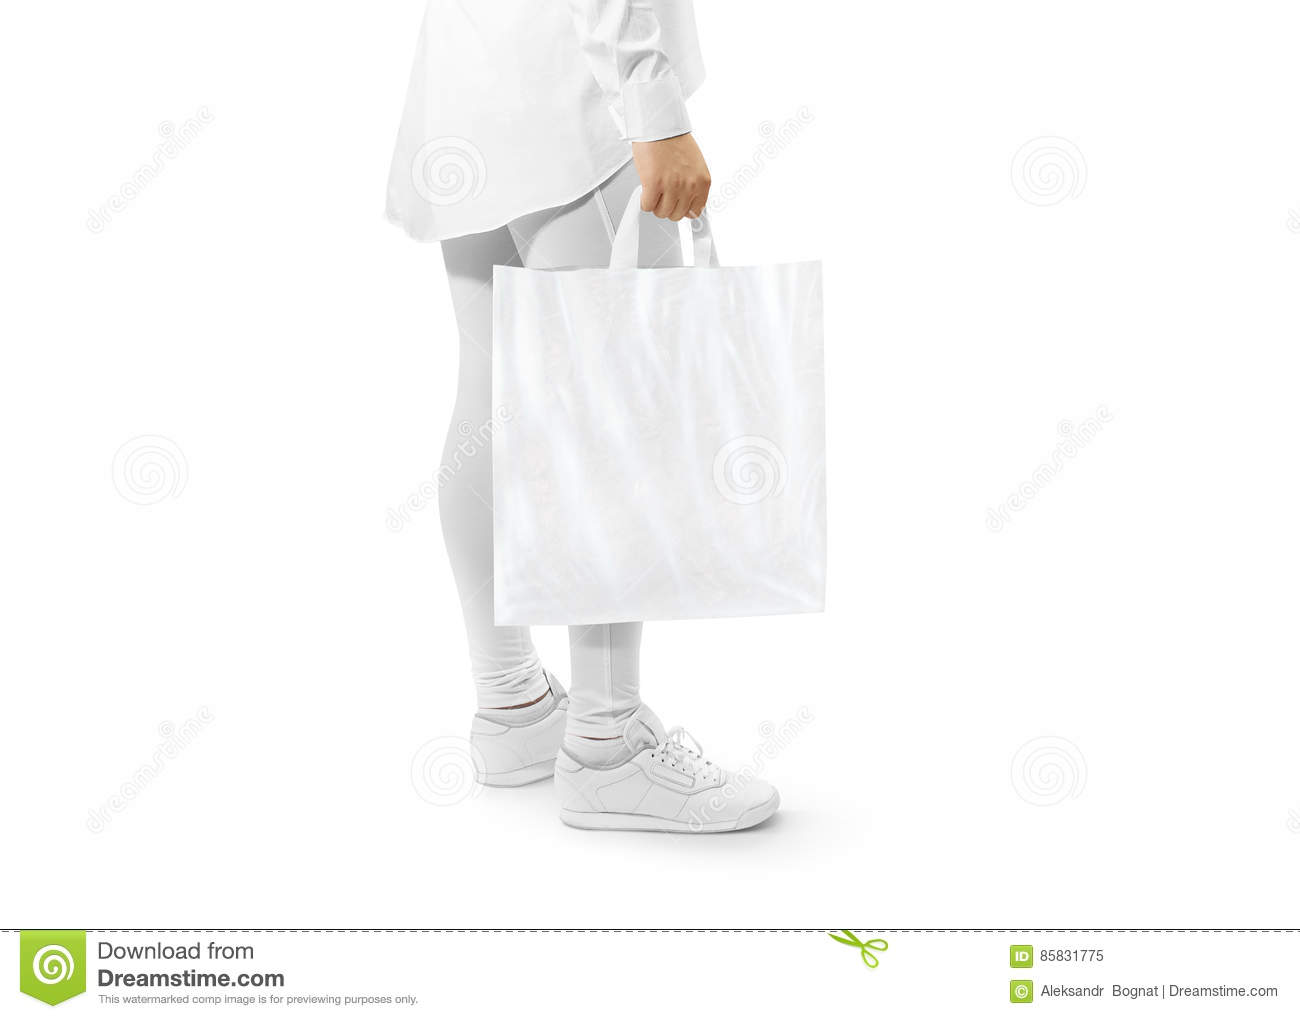 Get a realistic product with the best psd templates. 5 182 Plastic Bag Mockup Photos Free Royalty Free Stock Photos From Dreamstime